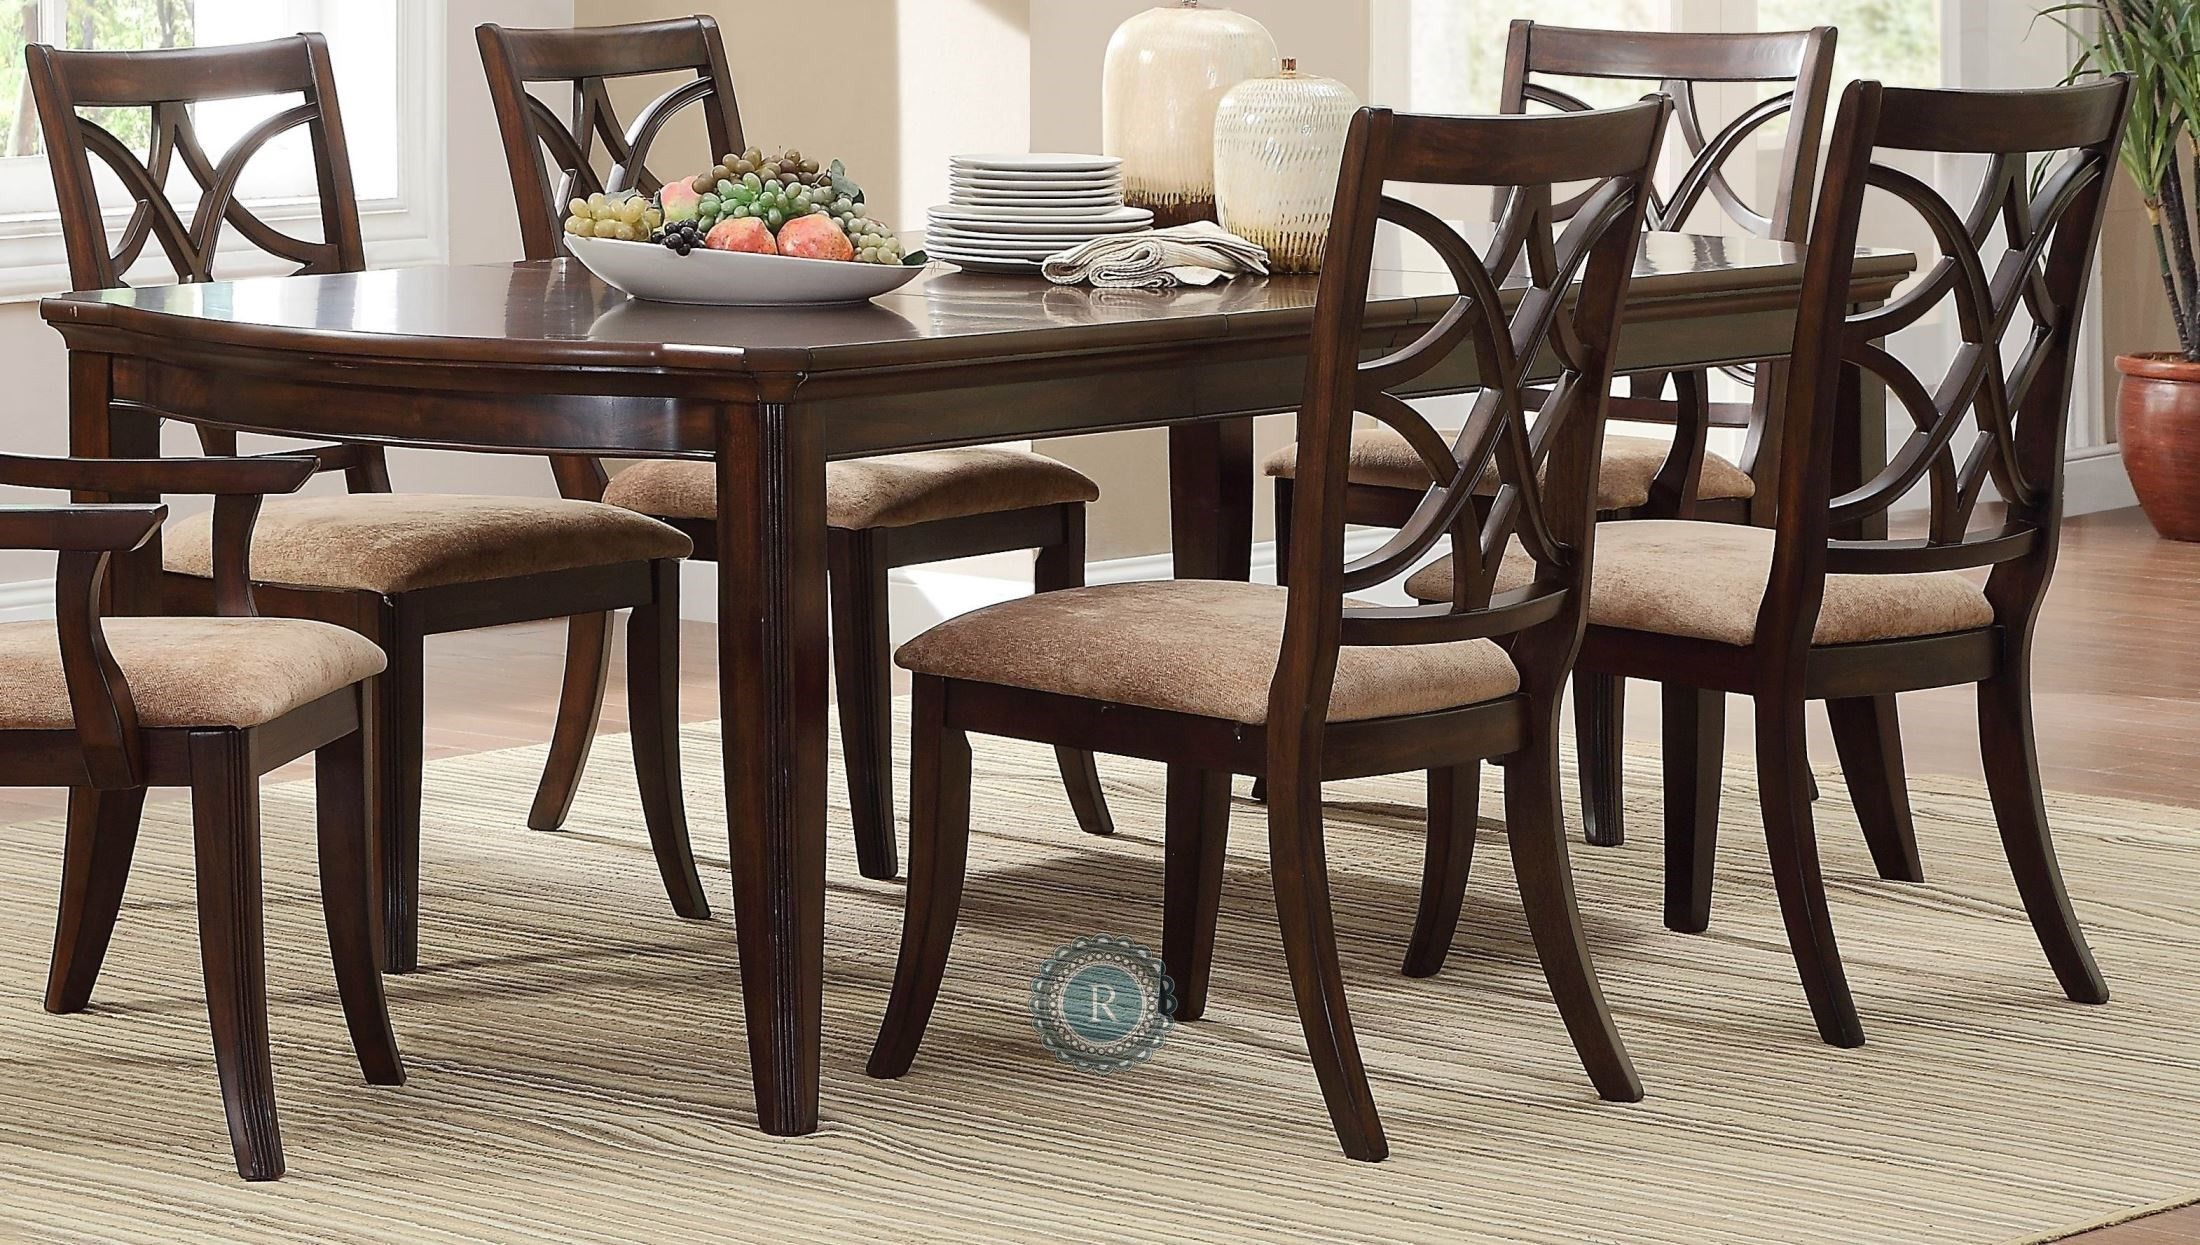 Keegan Cherry Extendable Dining Table In 2021 Kitchen Table Settings Dining Table Dimensions Dining Table Black